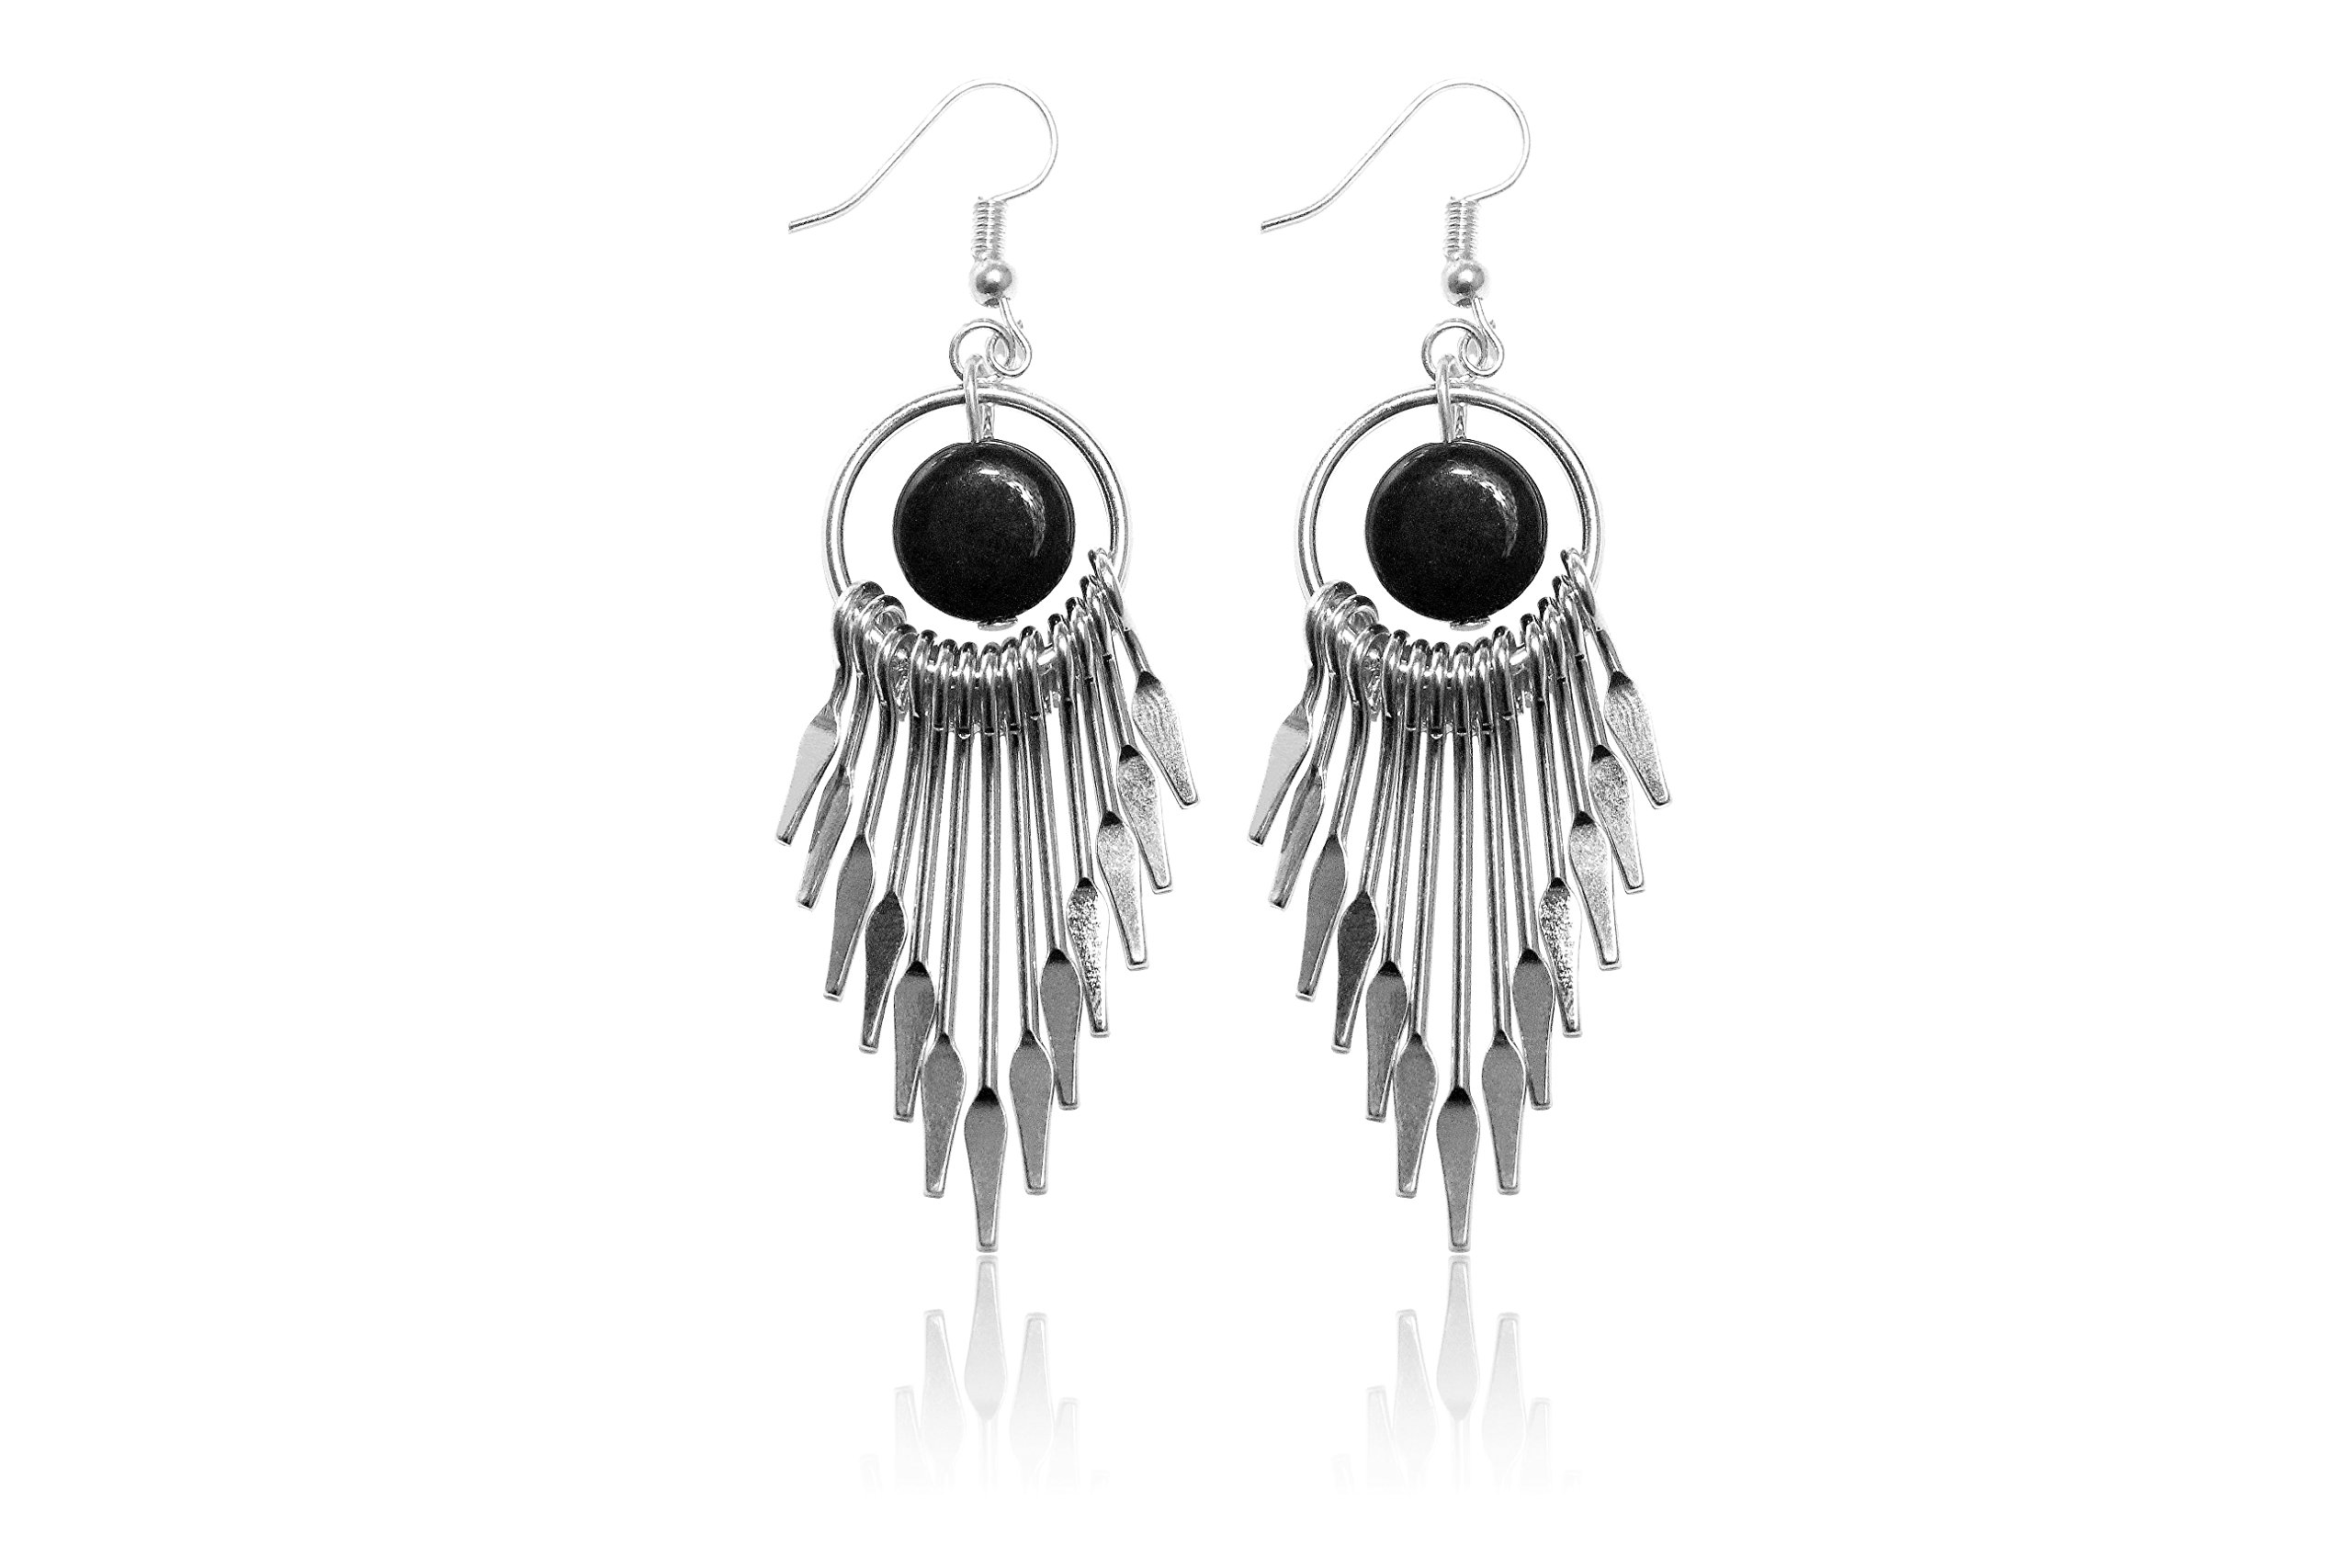 Women's Fashion Tassel Bohemiah Dangle Earrings Elegant Crafted In Silver Plated Best Gift